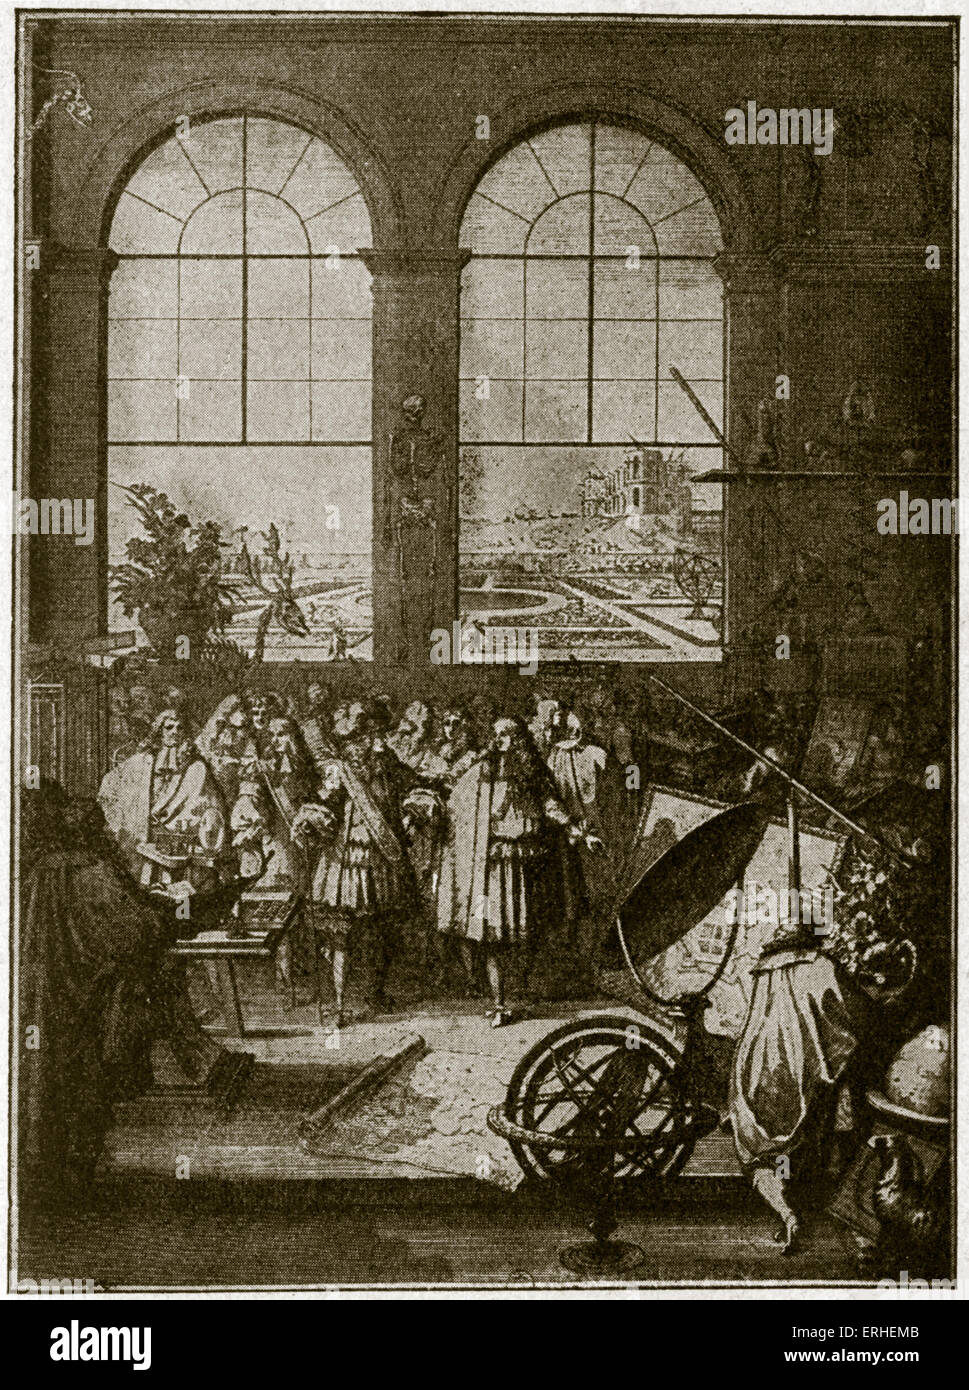 Inauguration of Louis XIV museum - woodcut - by Sebastian Le Clerc - possibly Louvre. Shows French scientists and - Stock Image